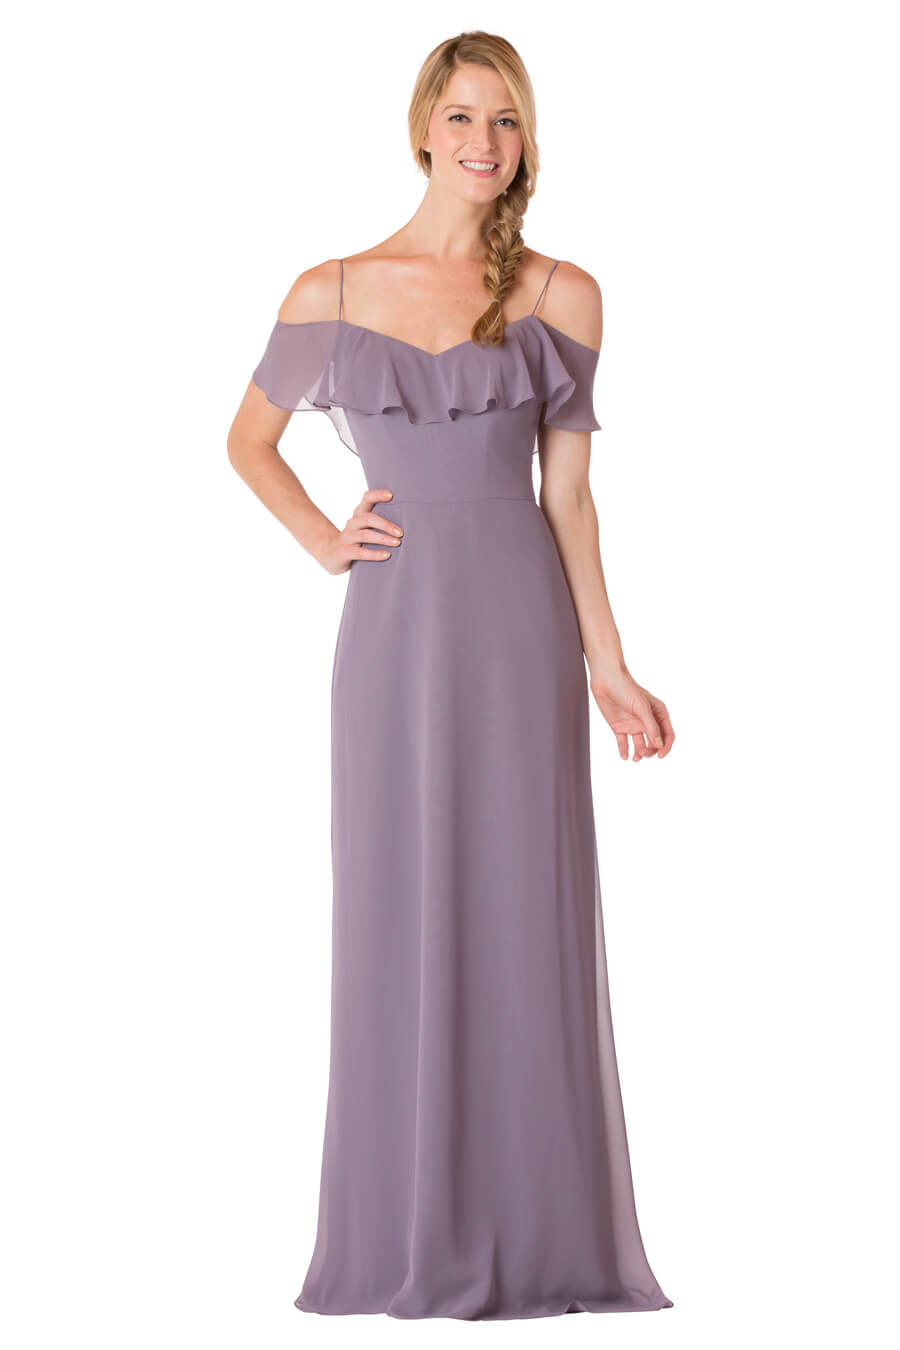 Prom dress outlet stores orlando fl